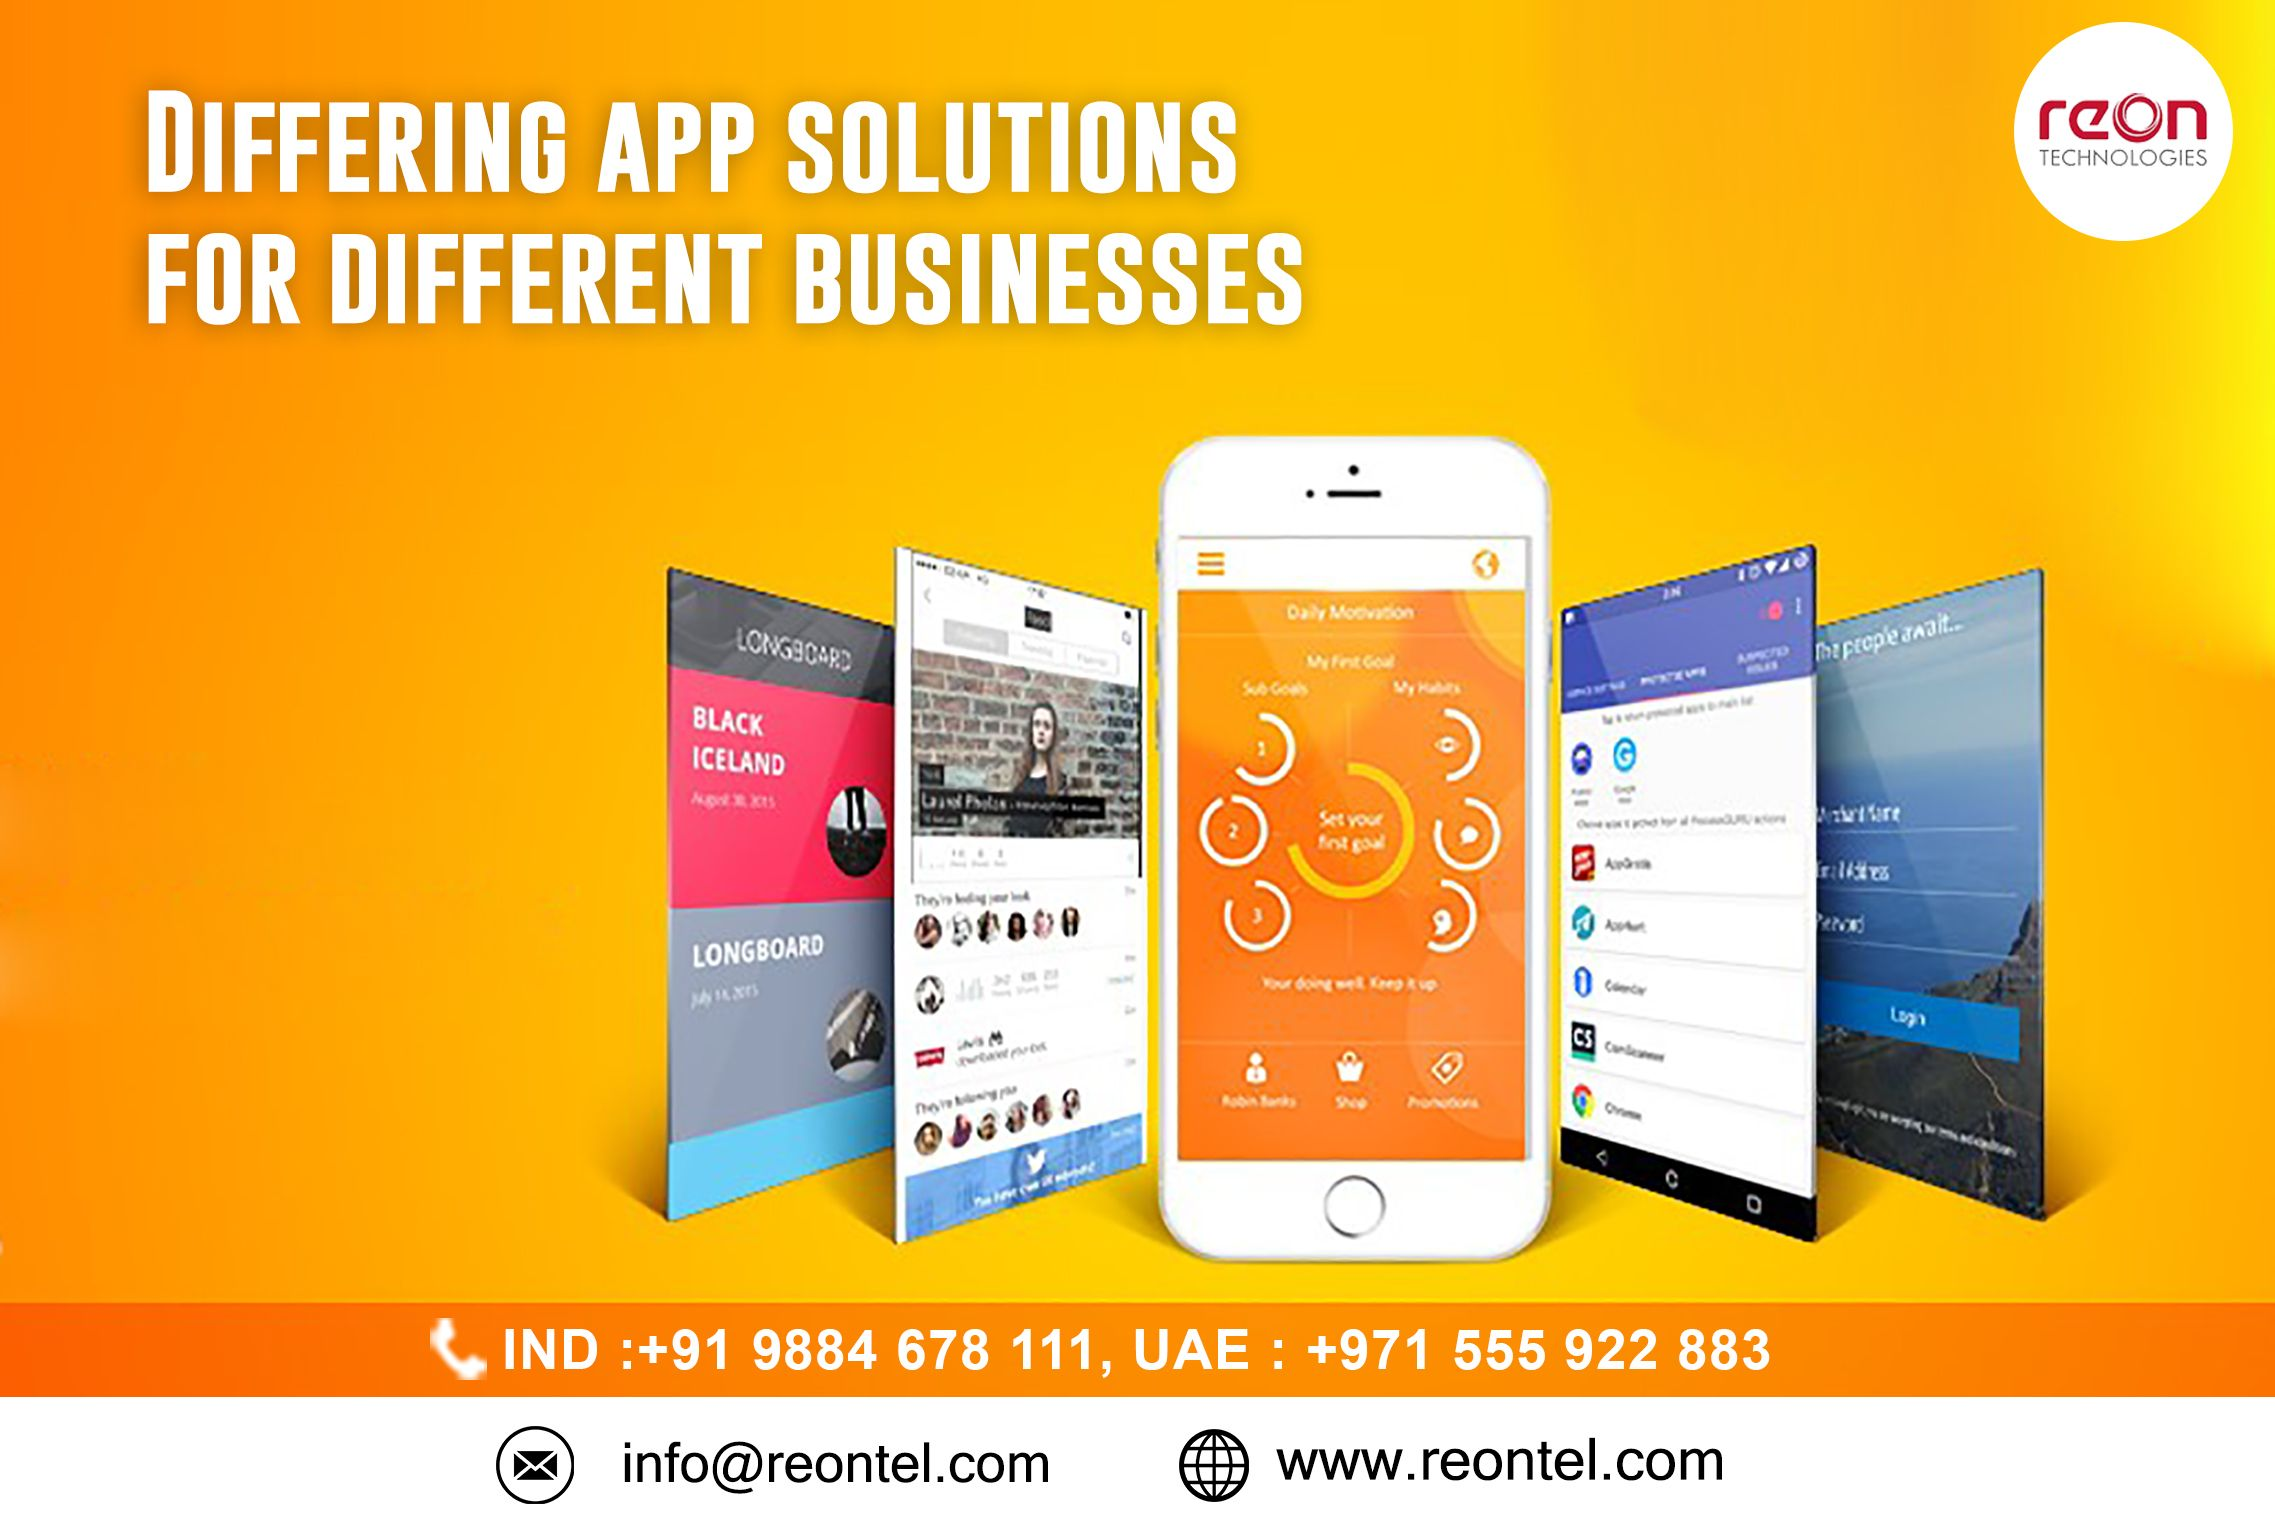 we create highly polished differing mobile apps that help